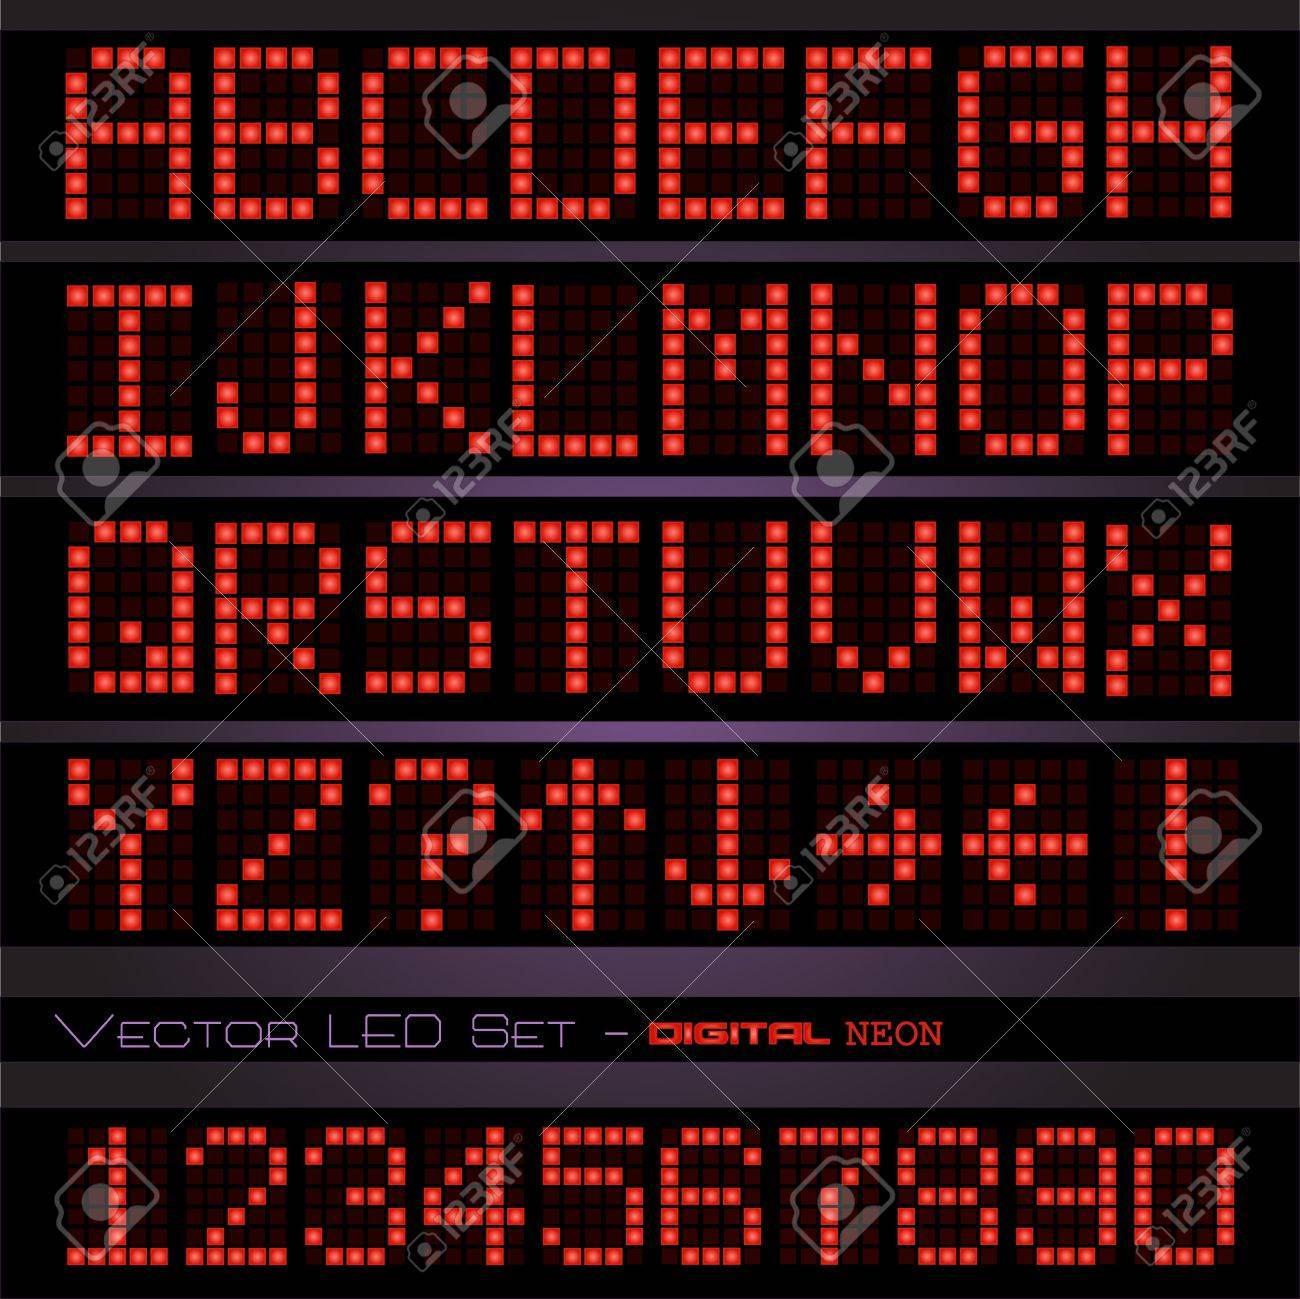 Image of a colorful red digital font set against a dark background. - 14921068